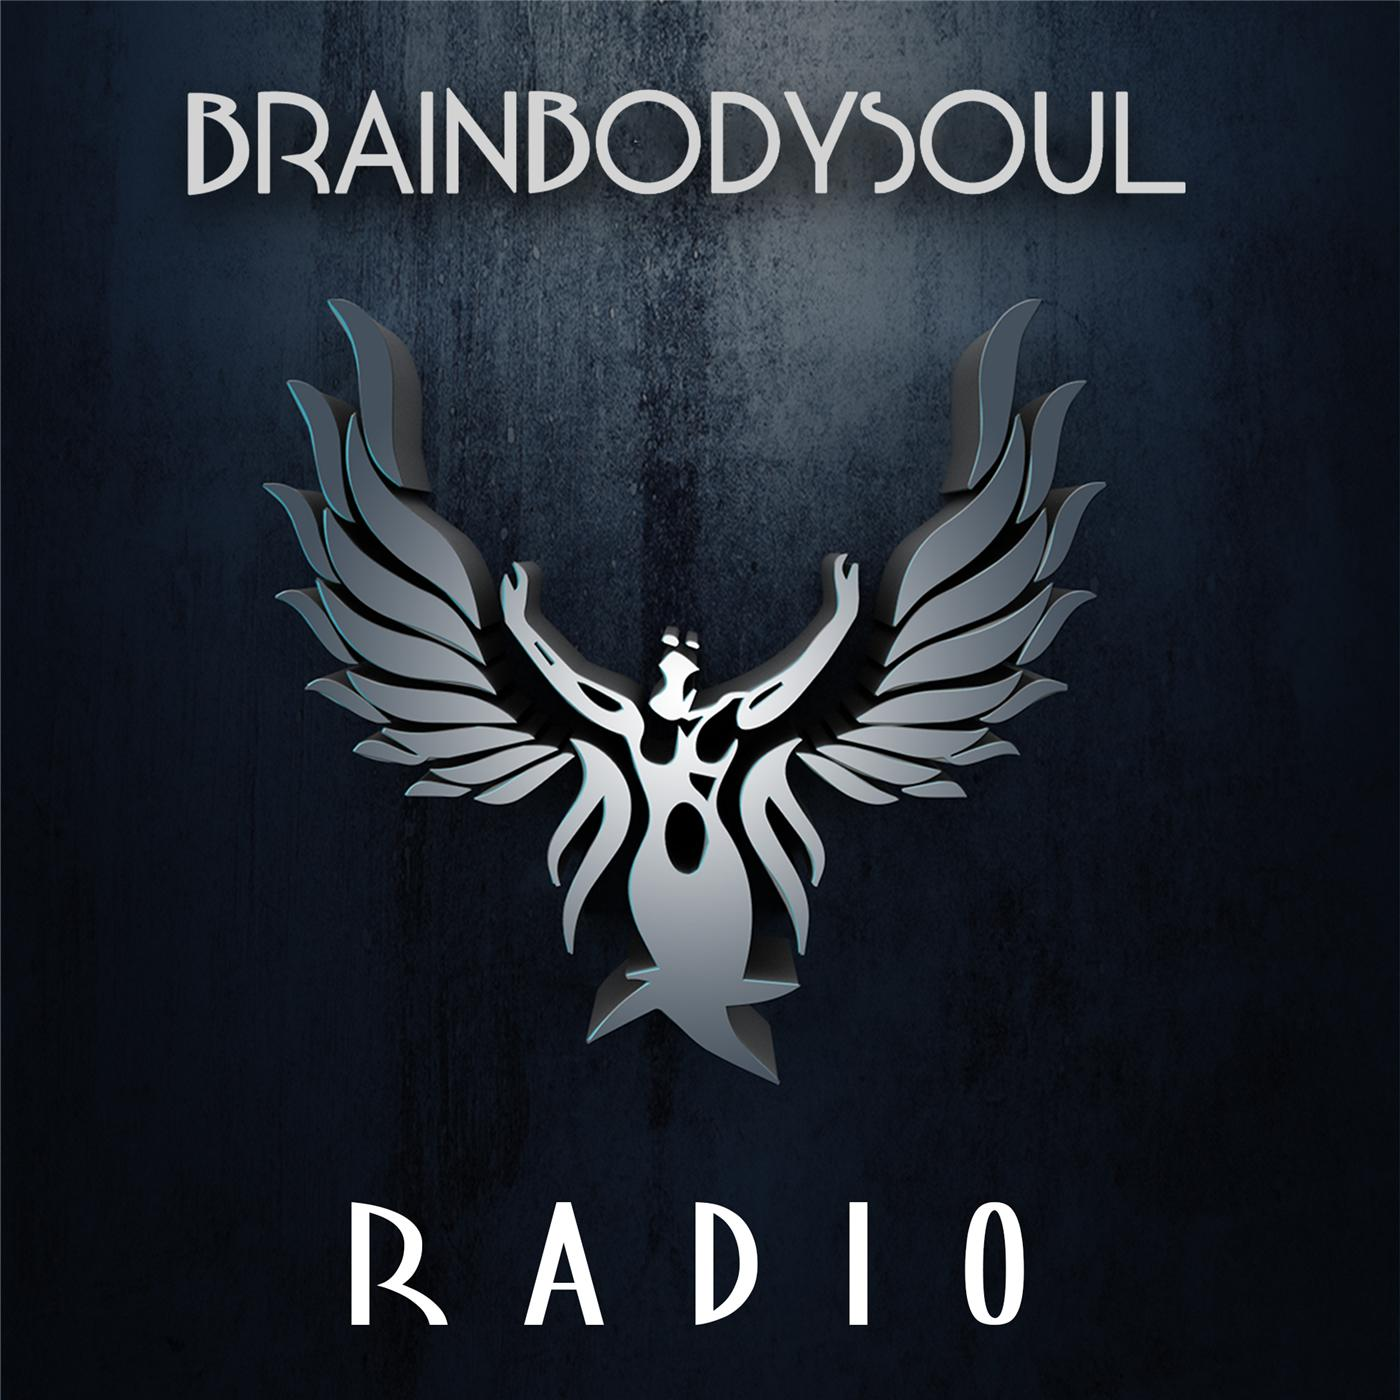 BrainBodySoul